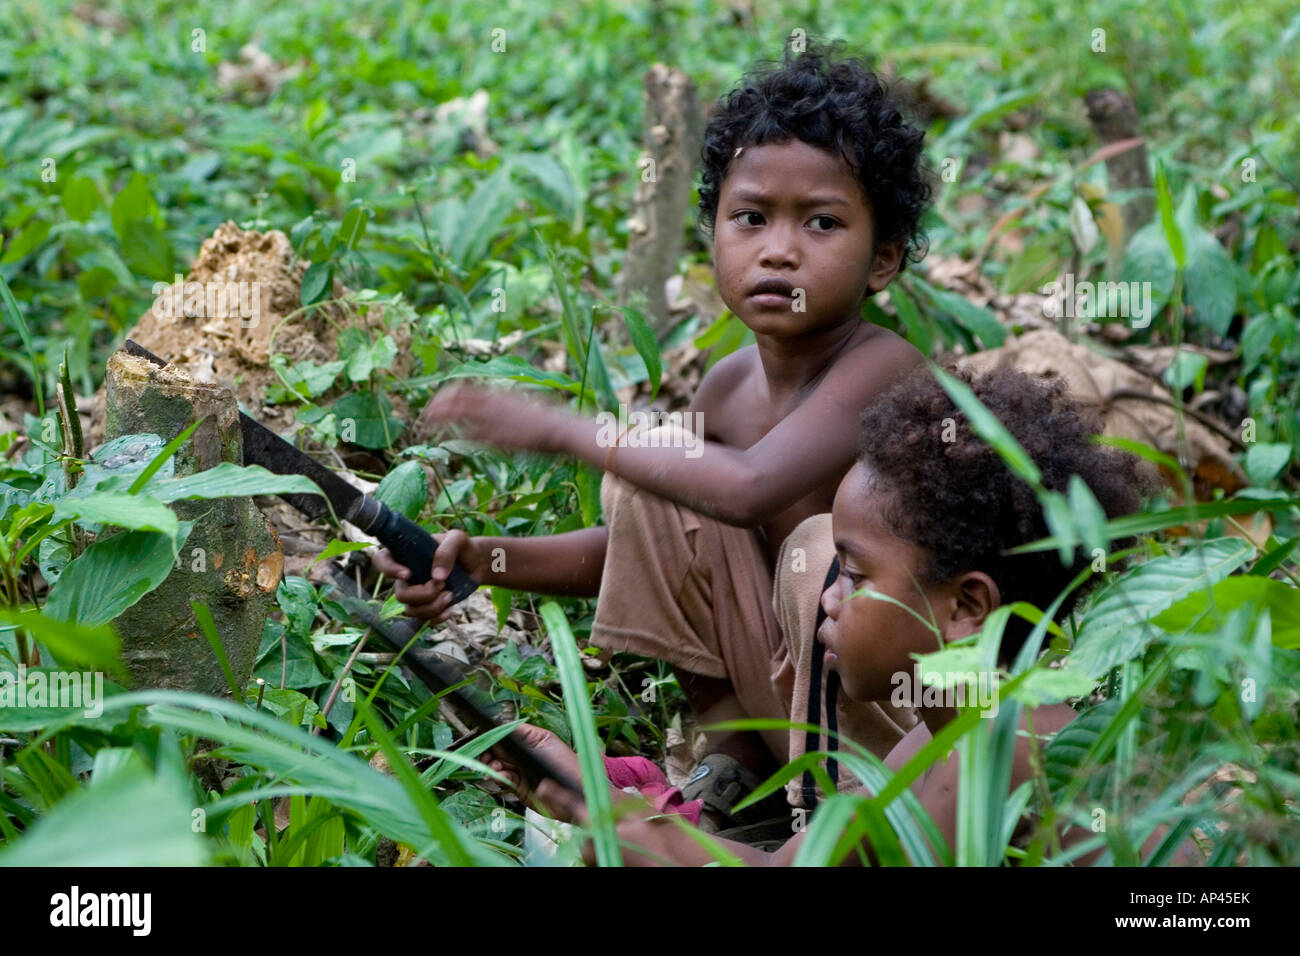 A child, a member of the Orang Asli tribe, plays with a knife in undergrowth within the Taman Negara National Park. Stock Photo